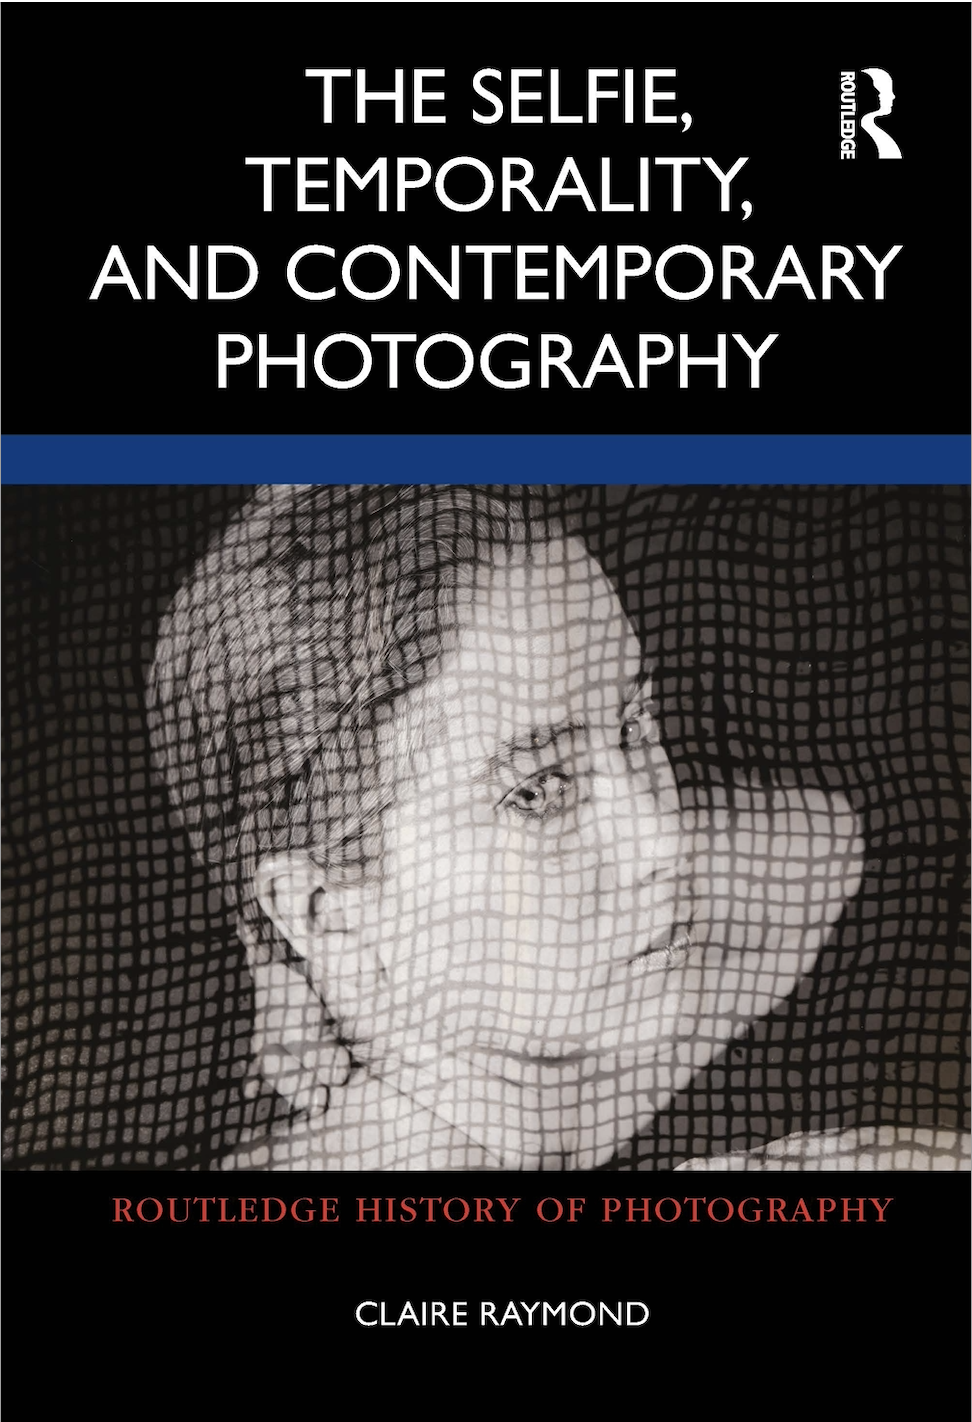 C. Raymond. The Selfie, Temporality, and Contemporary Photography